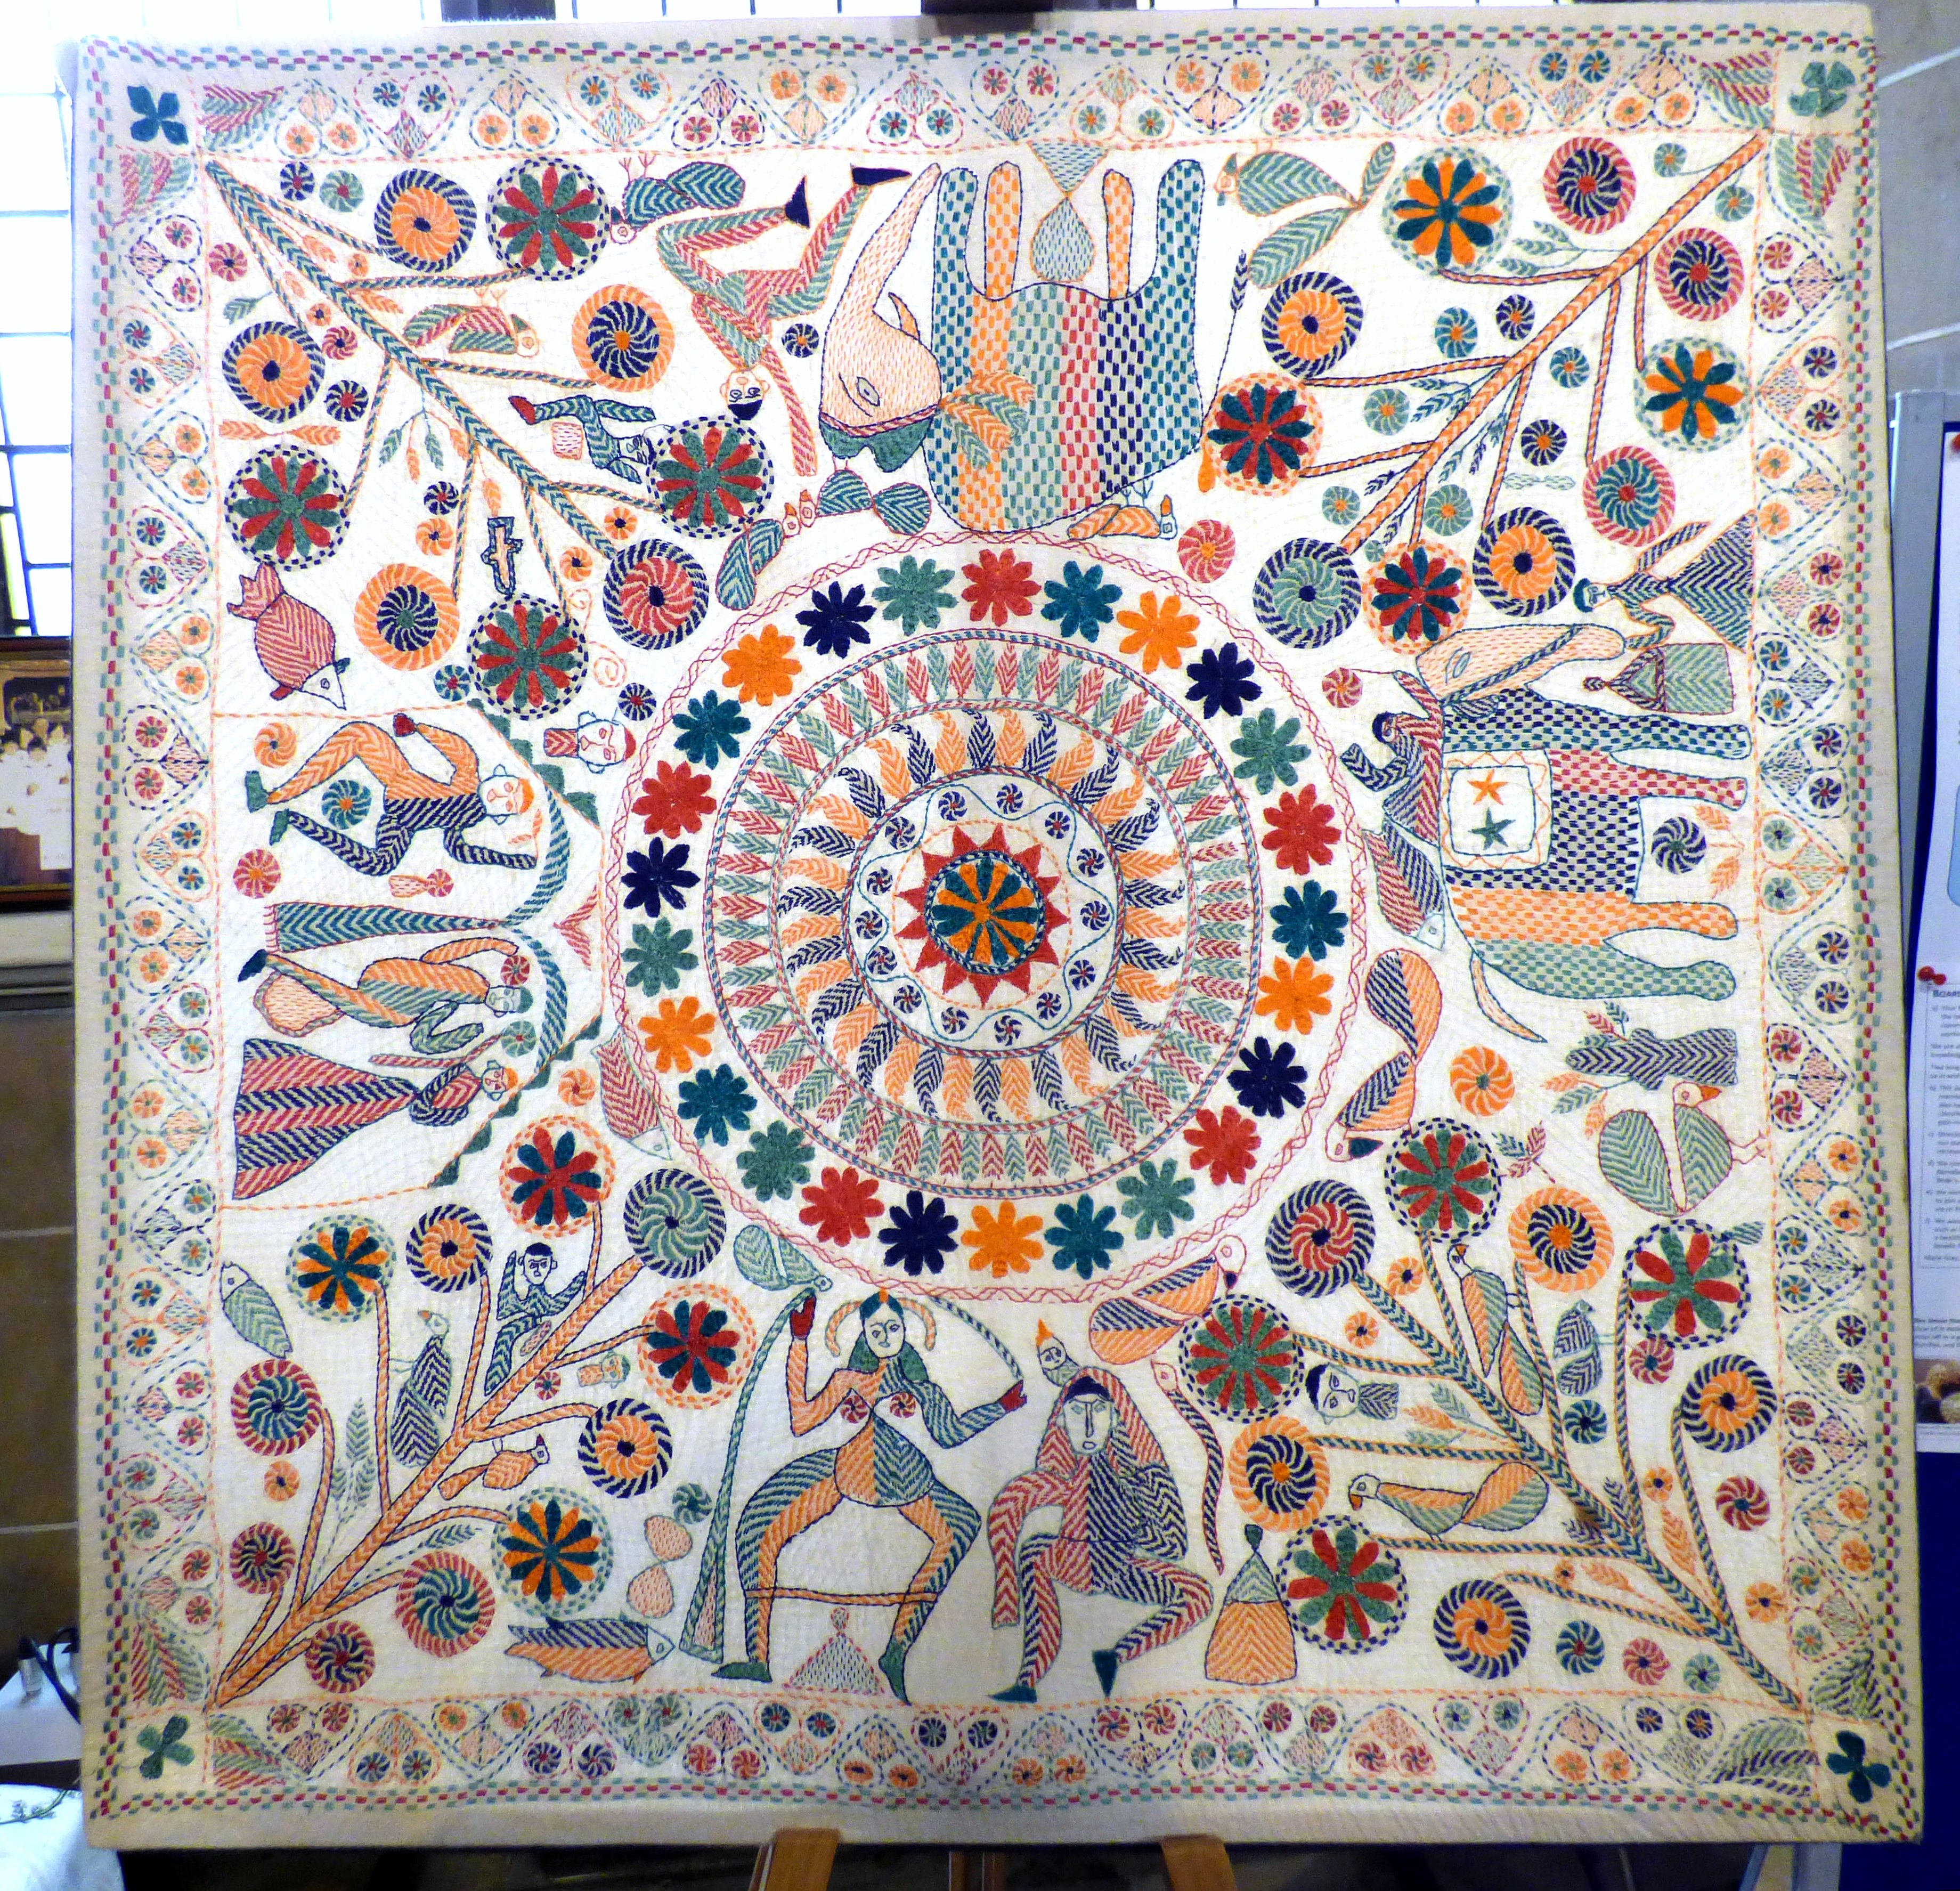 kantha quilt from Ruby Porter's collection